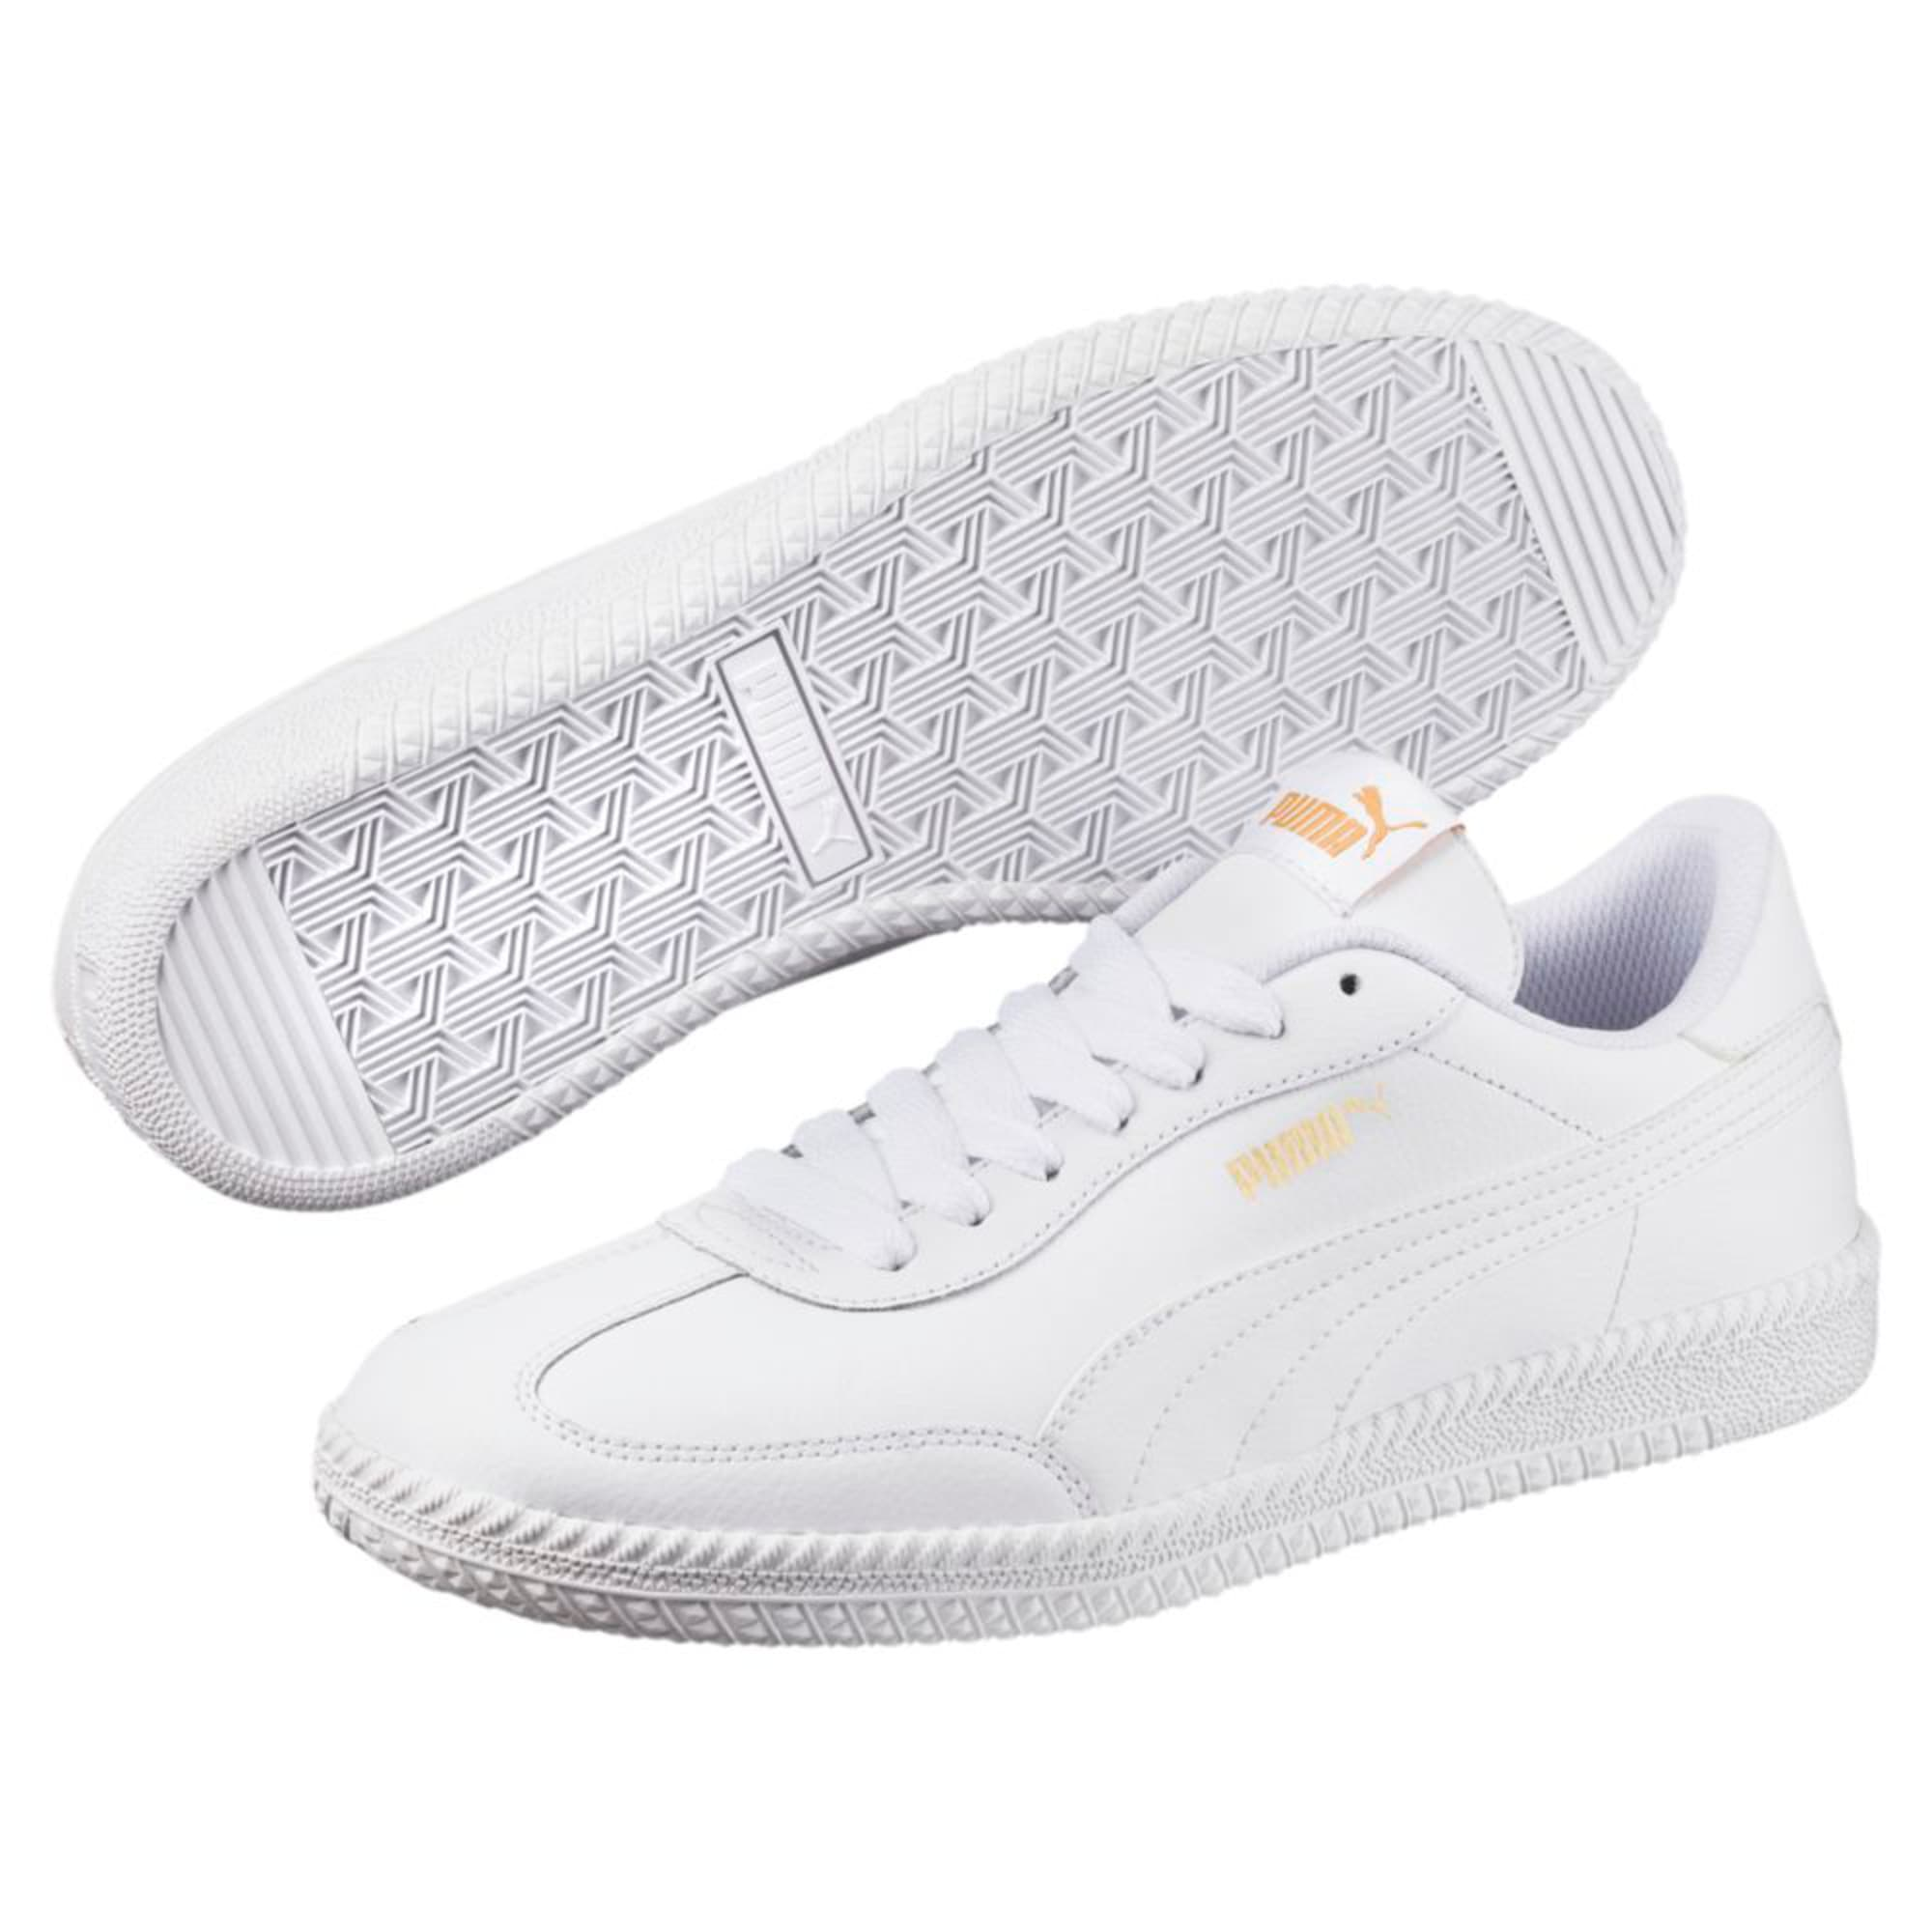 Thumbnail 6 of Astro Cup Leather Trainers, Puma White-Puma White, medium-IND